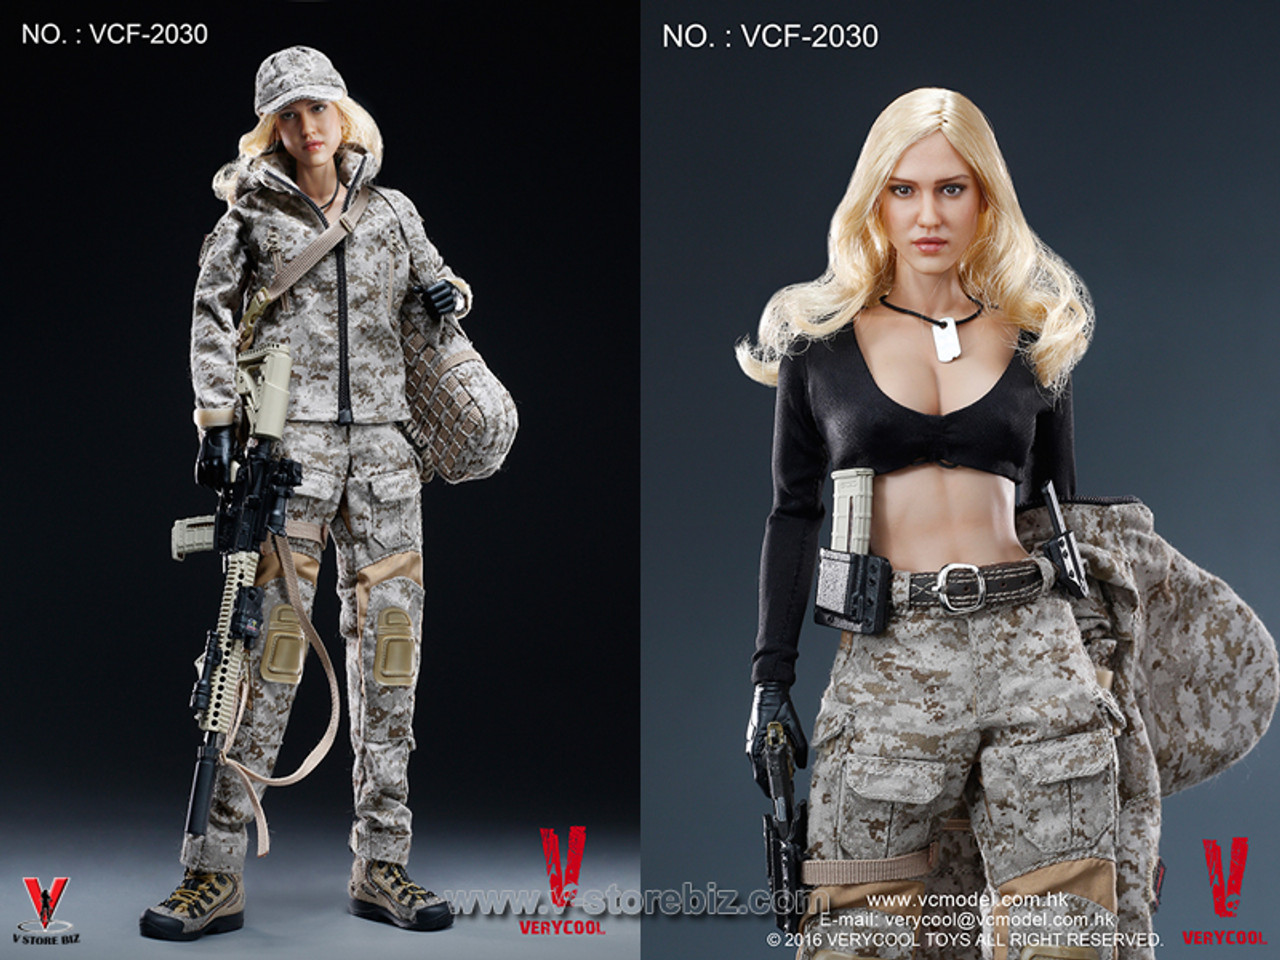 VERYCOOL Digital Camo Female Soldier Axe /& Sheath VCF-2030 loose 1//6th scale